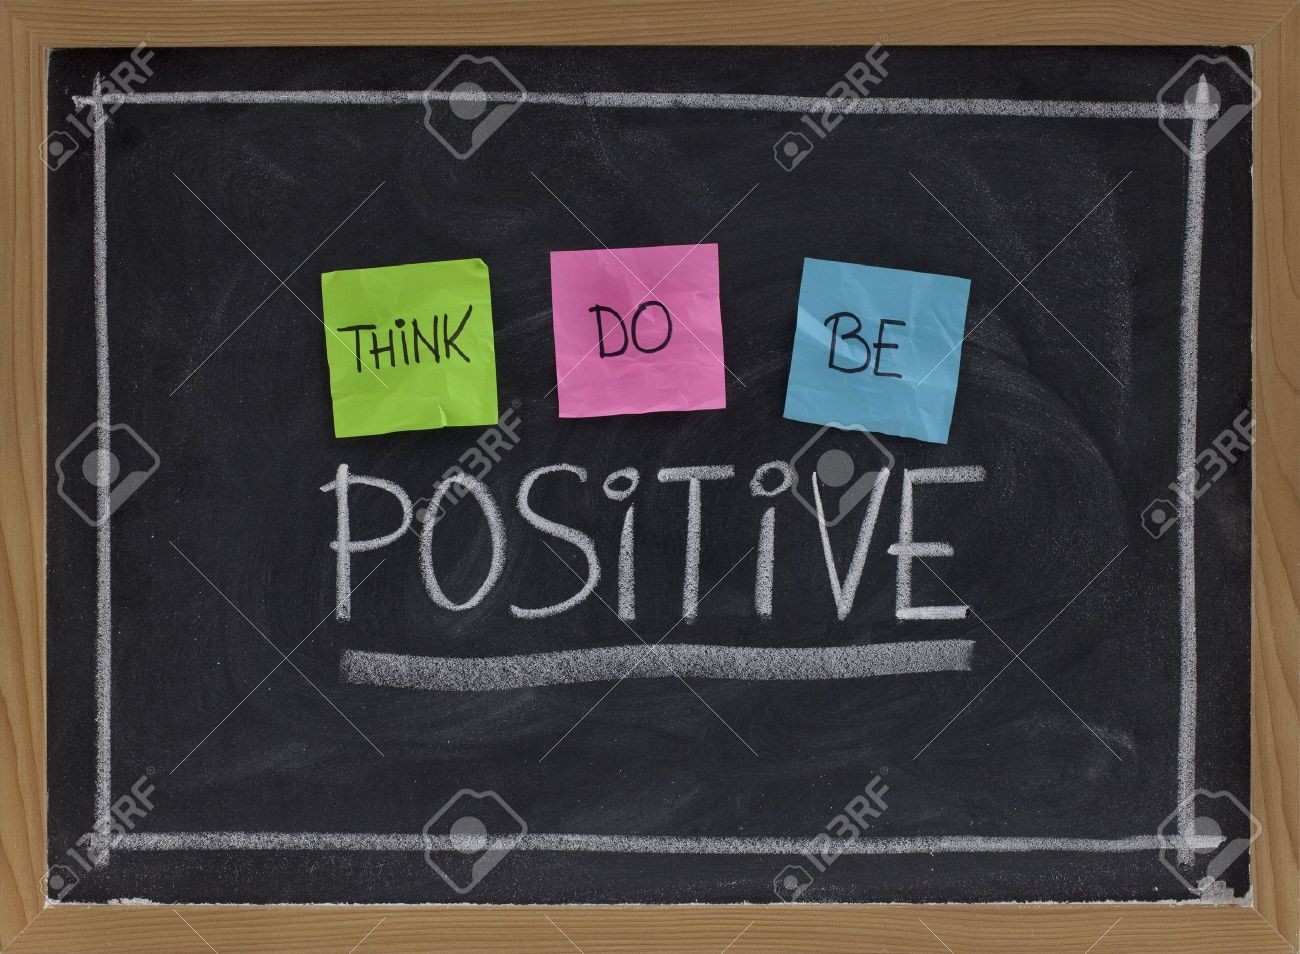 think, do, be positive - positivity concept, color sticky notes, white chalk drawing and handwriting on blackboard Stock Photo - 5908271